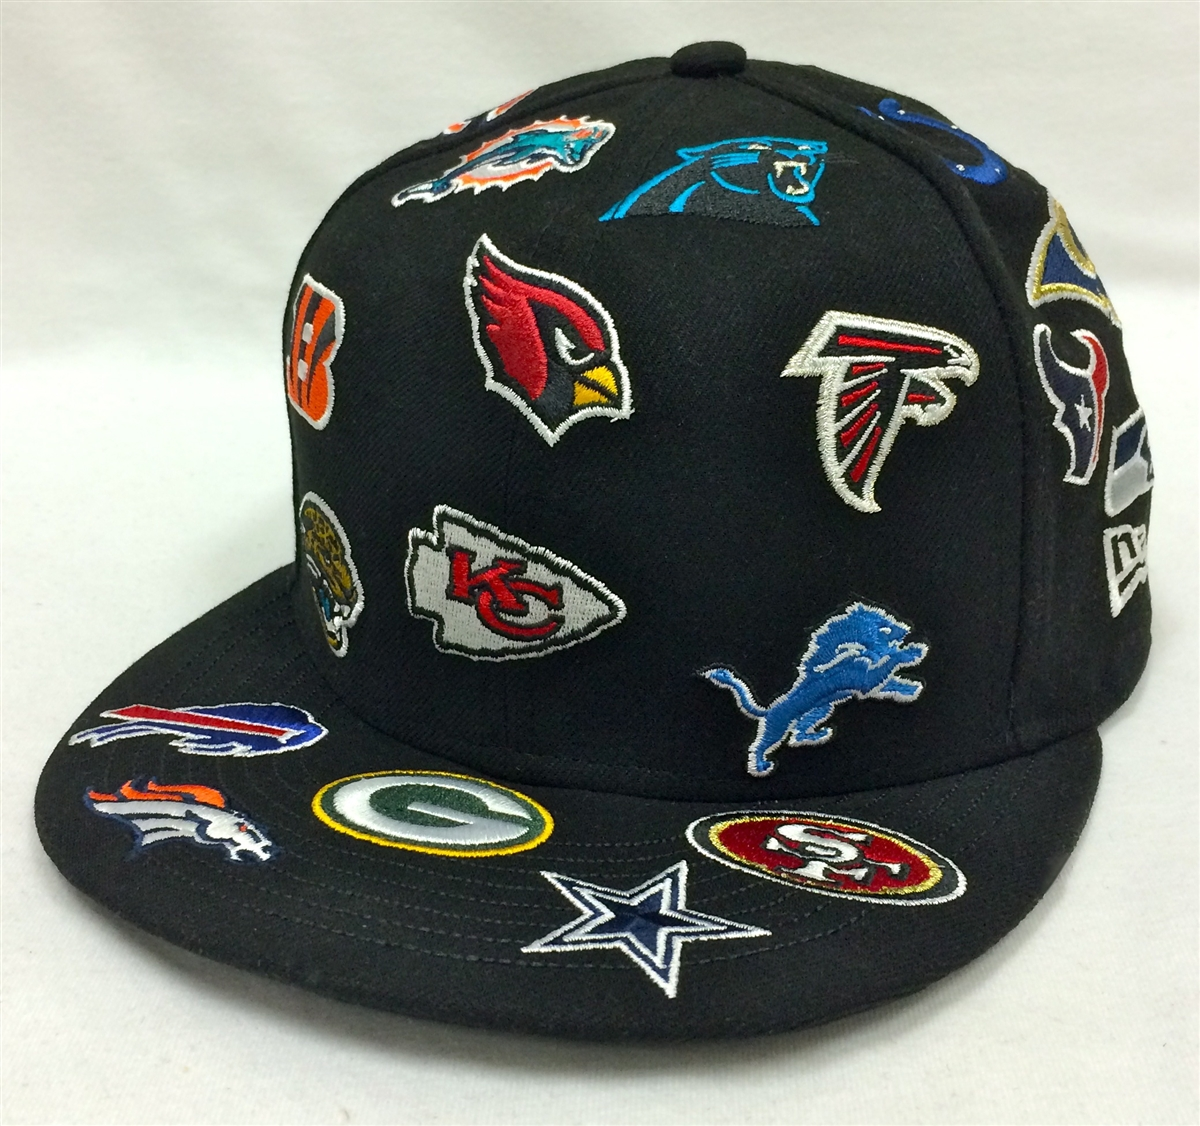 New Era 59Fifty All-Over NFL Black Fitted Cap c6e591273ff